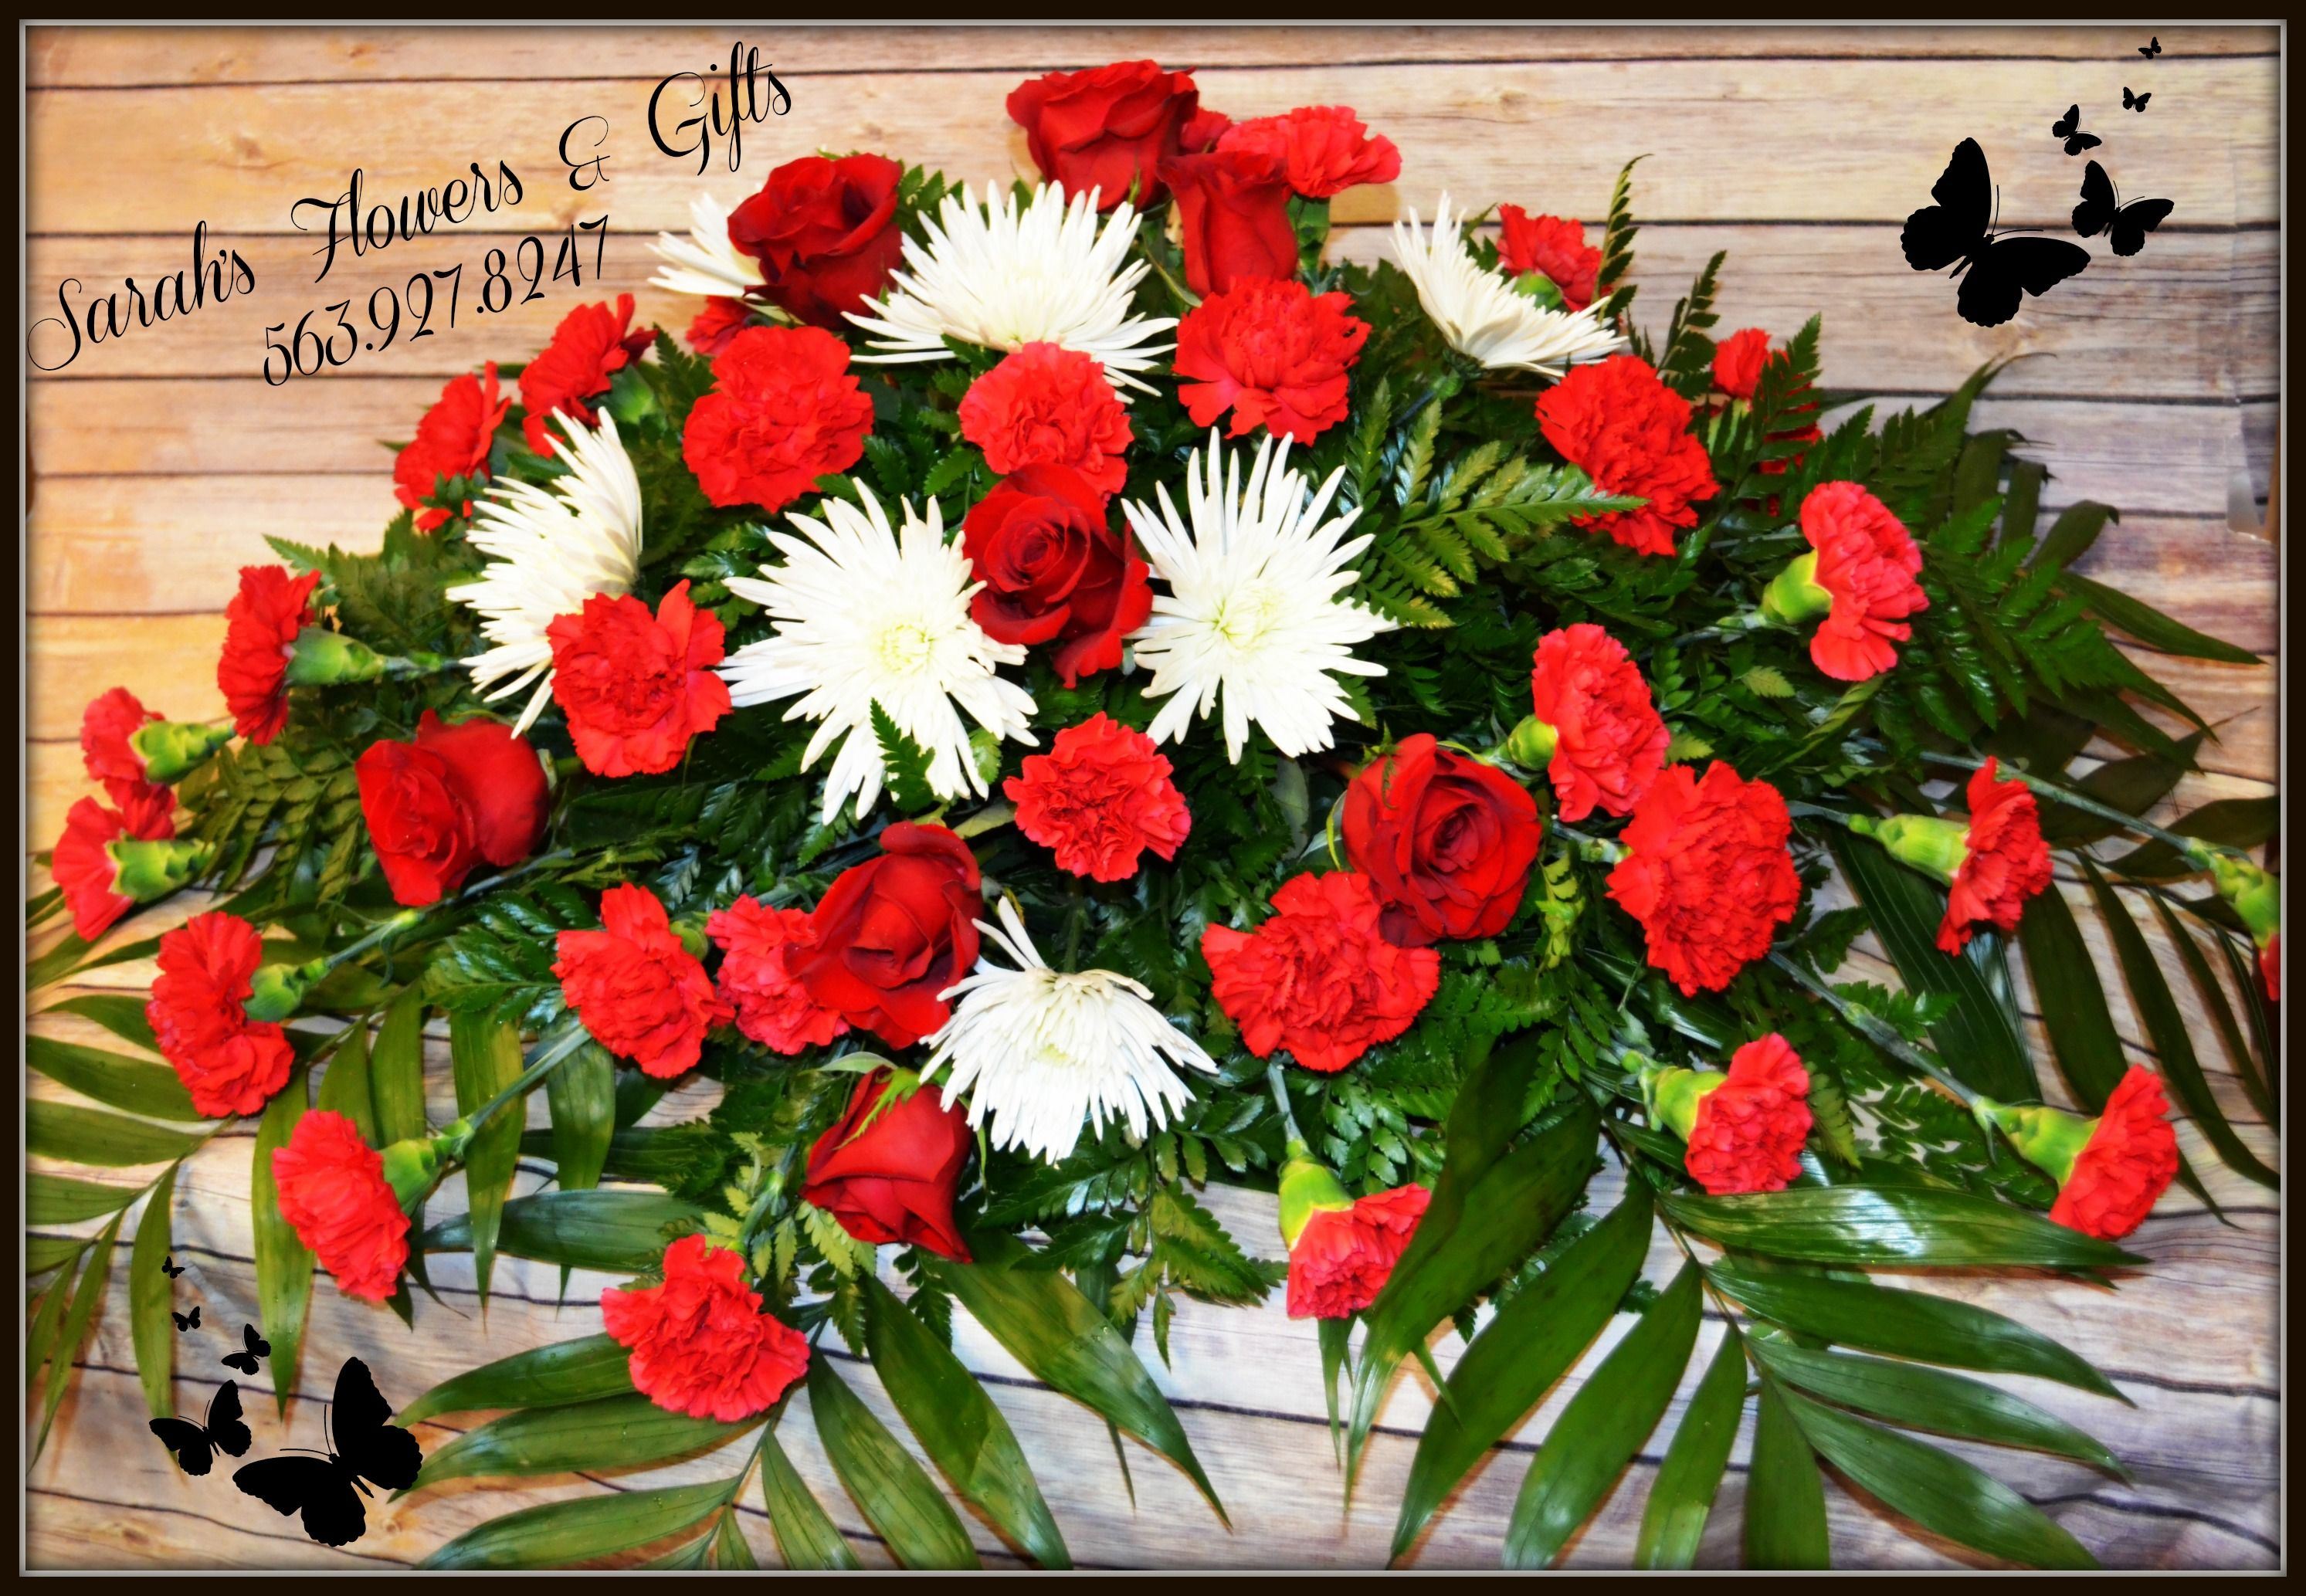 Sarahs flowers gifts full service florist manchester iowa sarahs flowers gifts full service florist manchester iowa serving leonard muller funeral home izmirmasajfo Choice Image